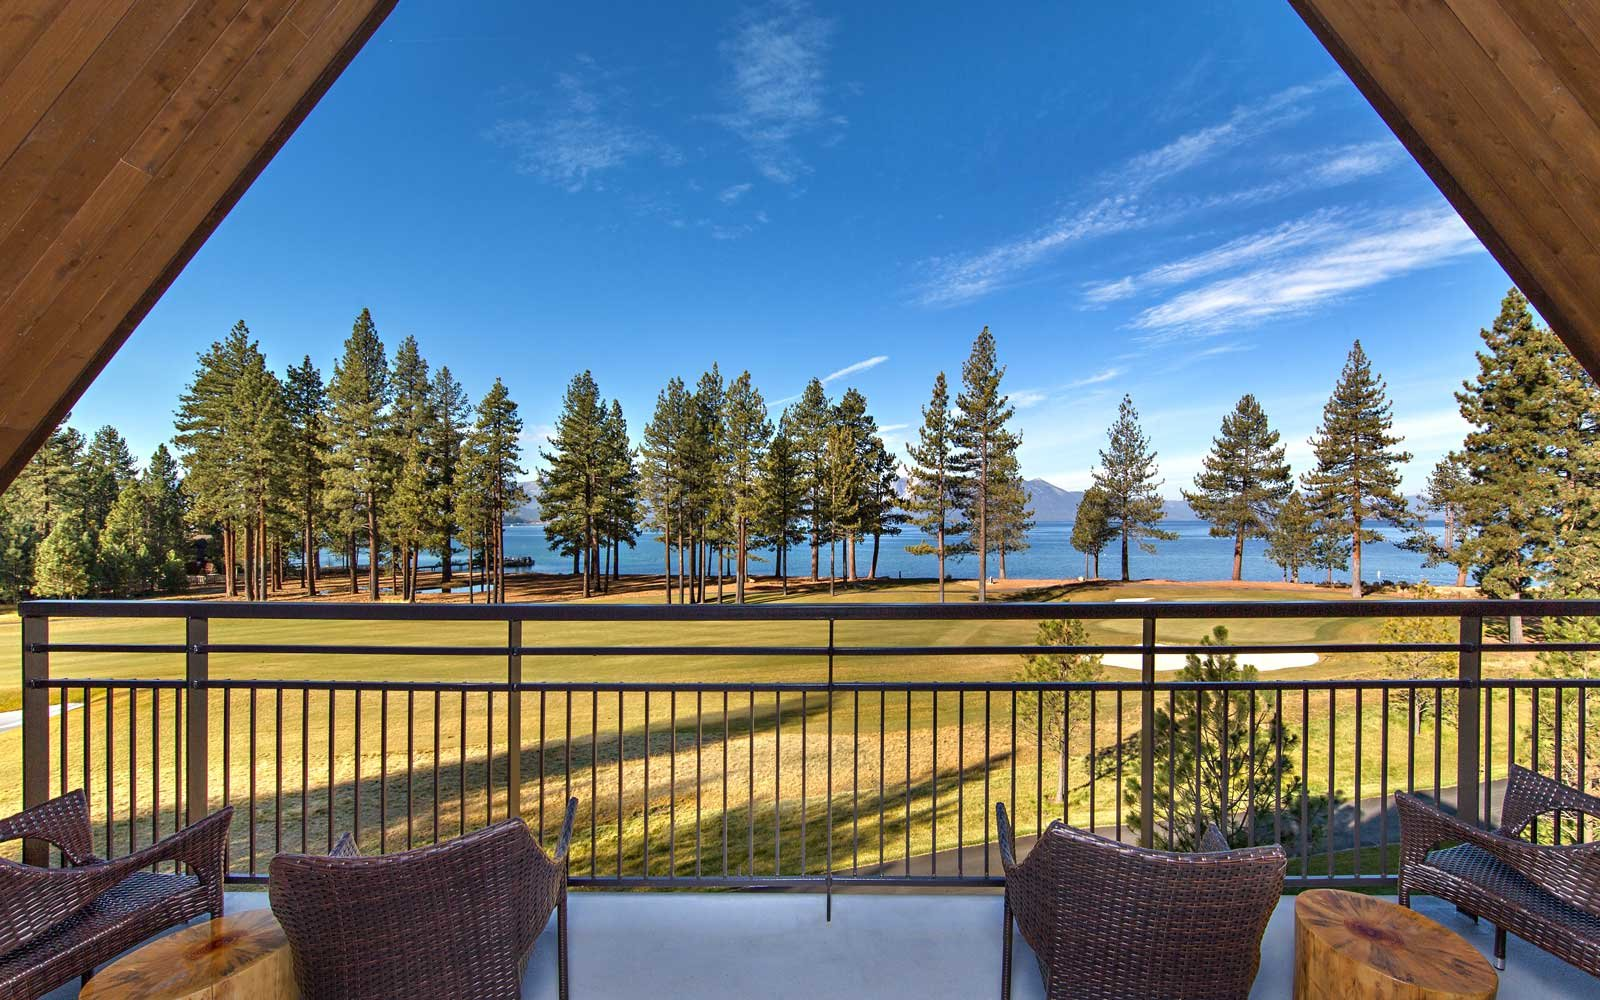 View from The Lodge at Edgewood Tahoe